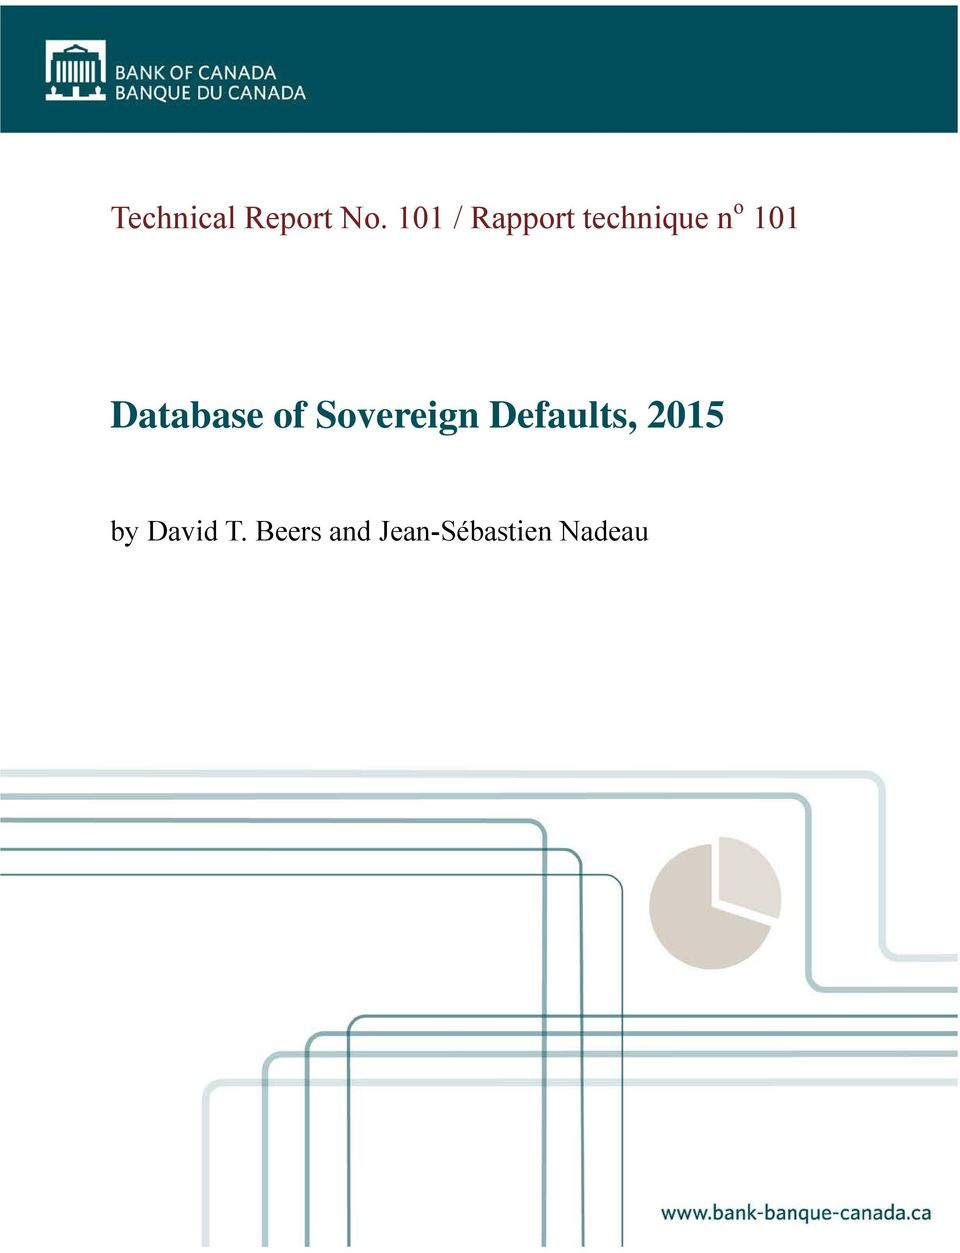 Database of Sovereign Defaults,